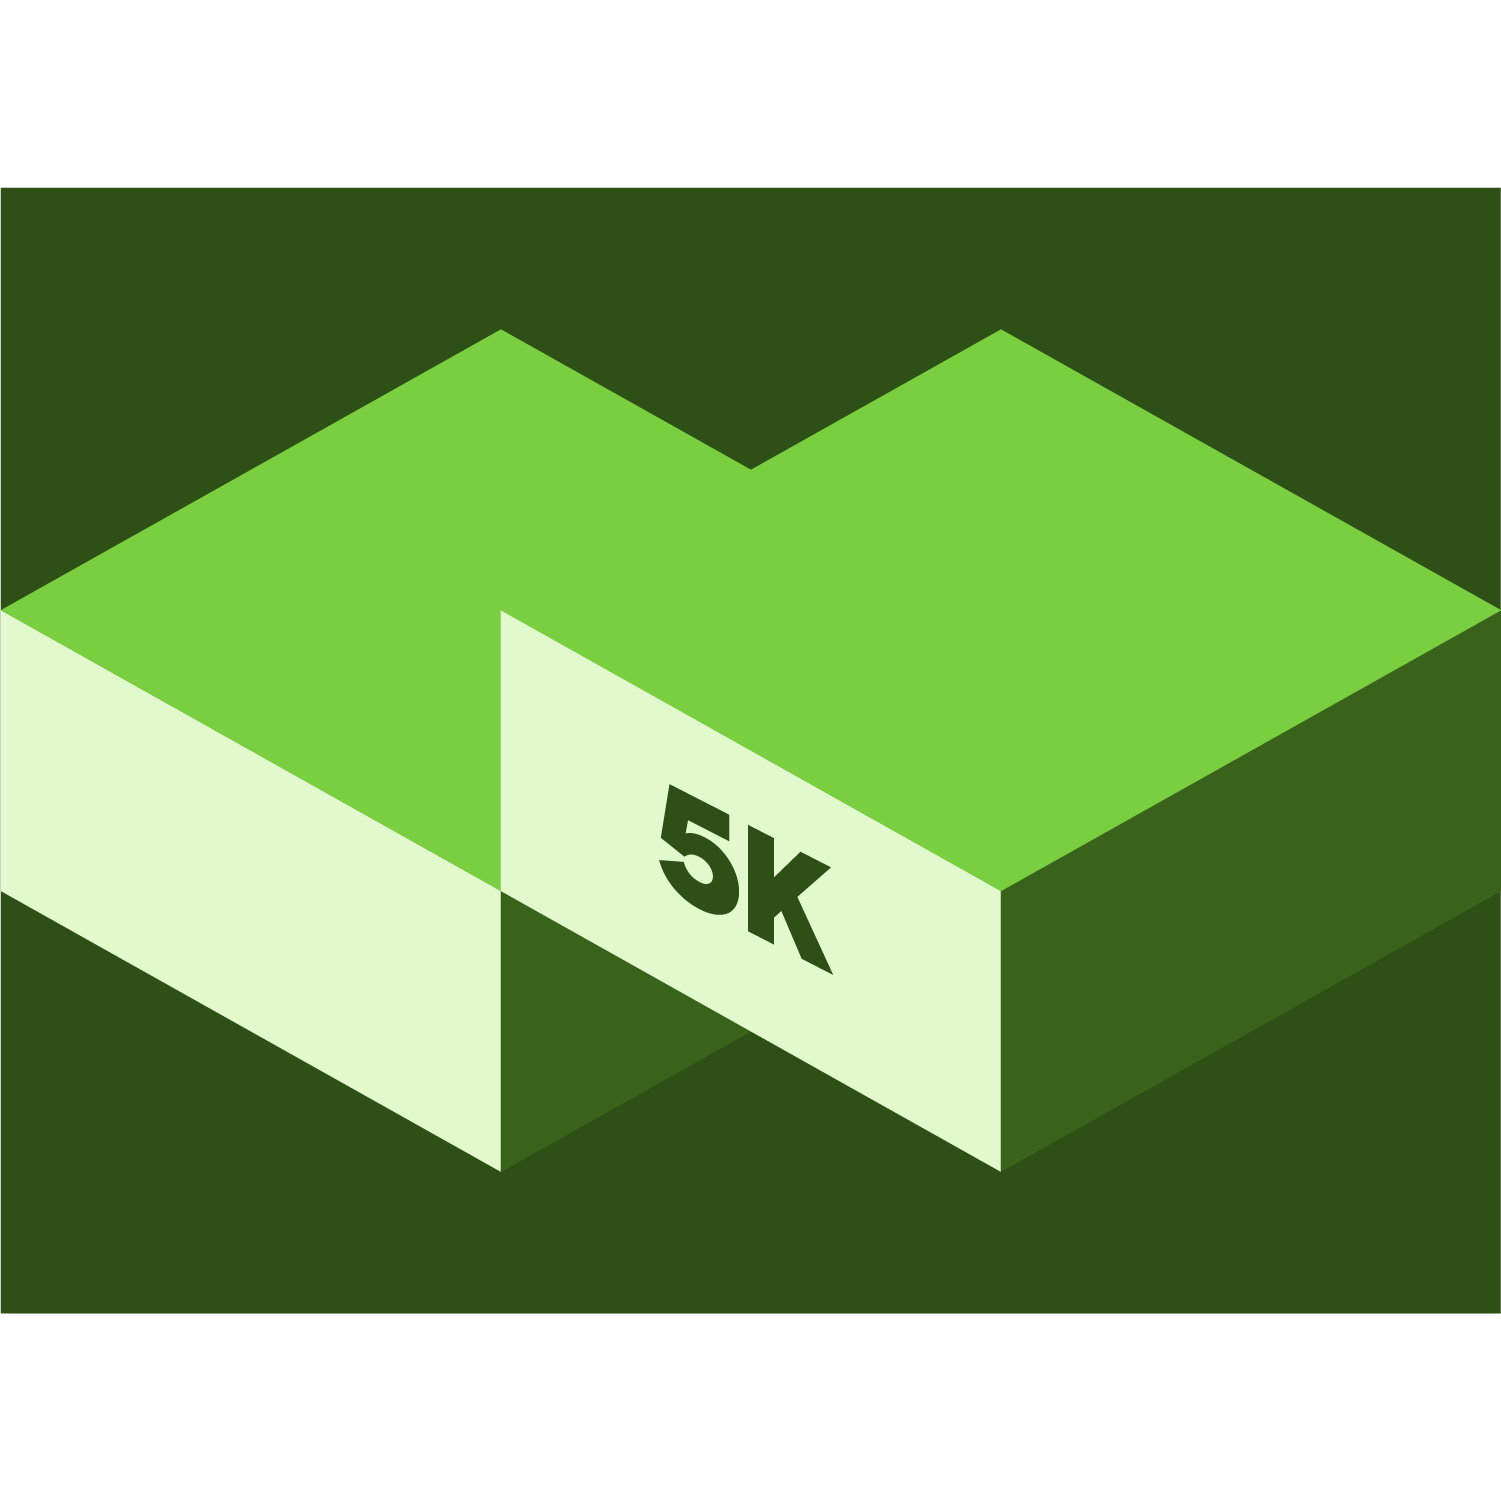 March 5K Virtual Race